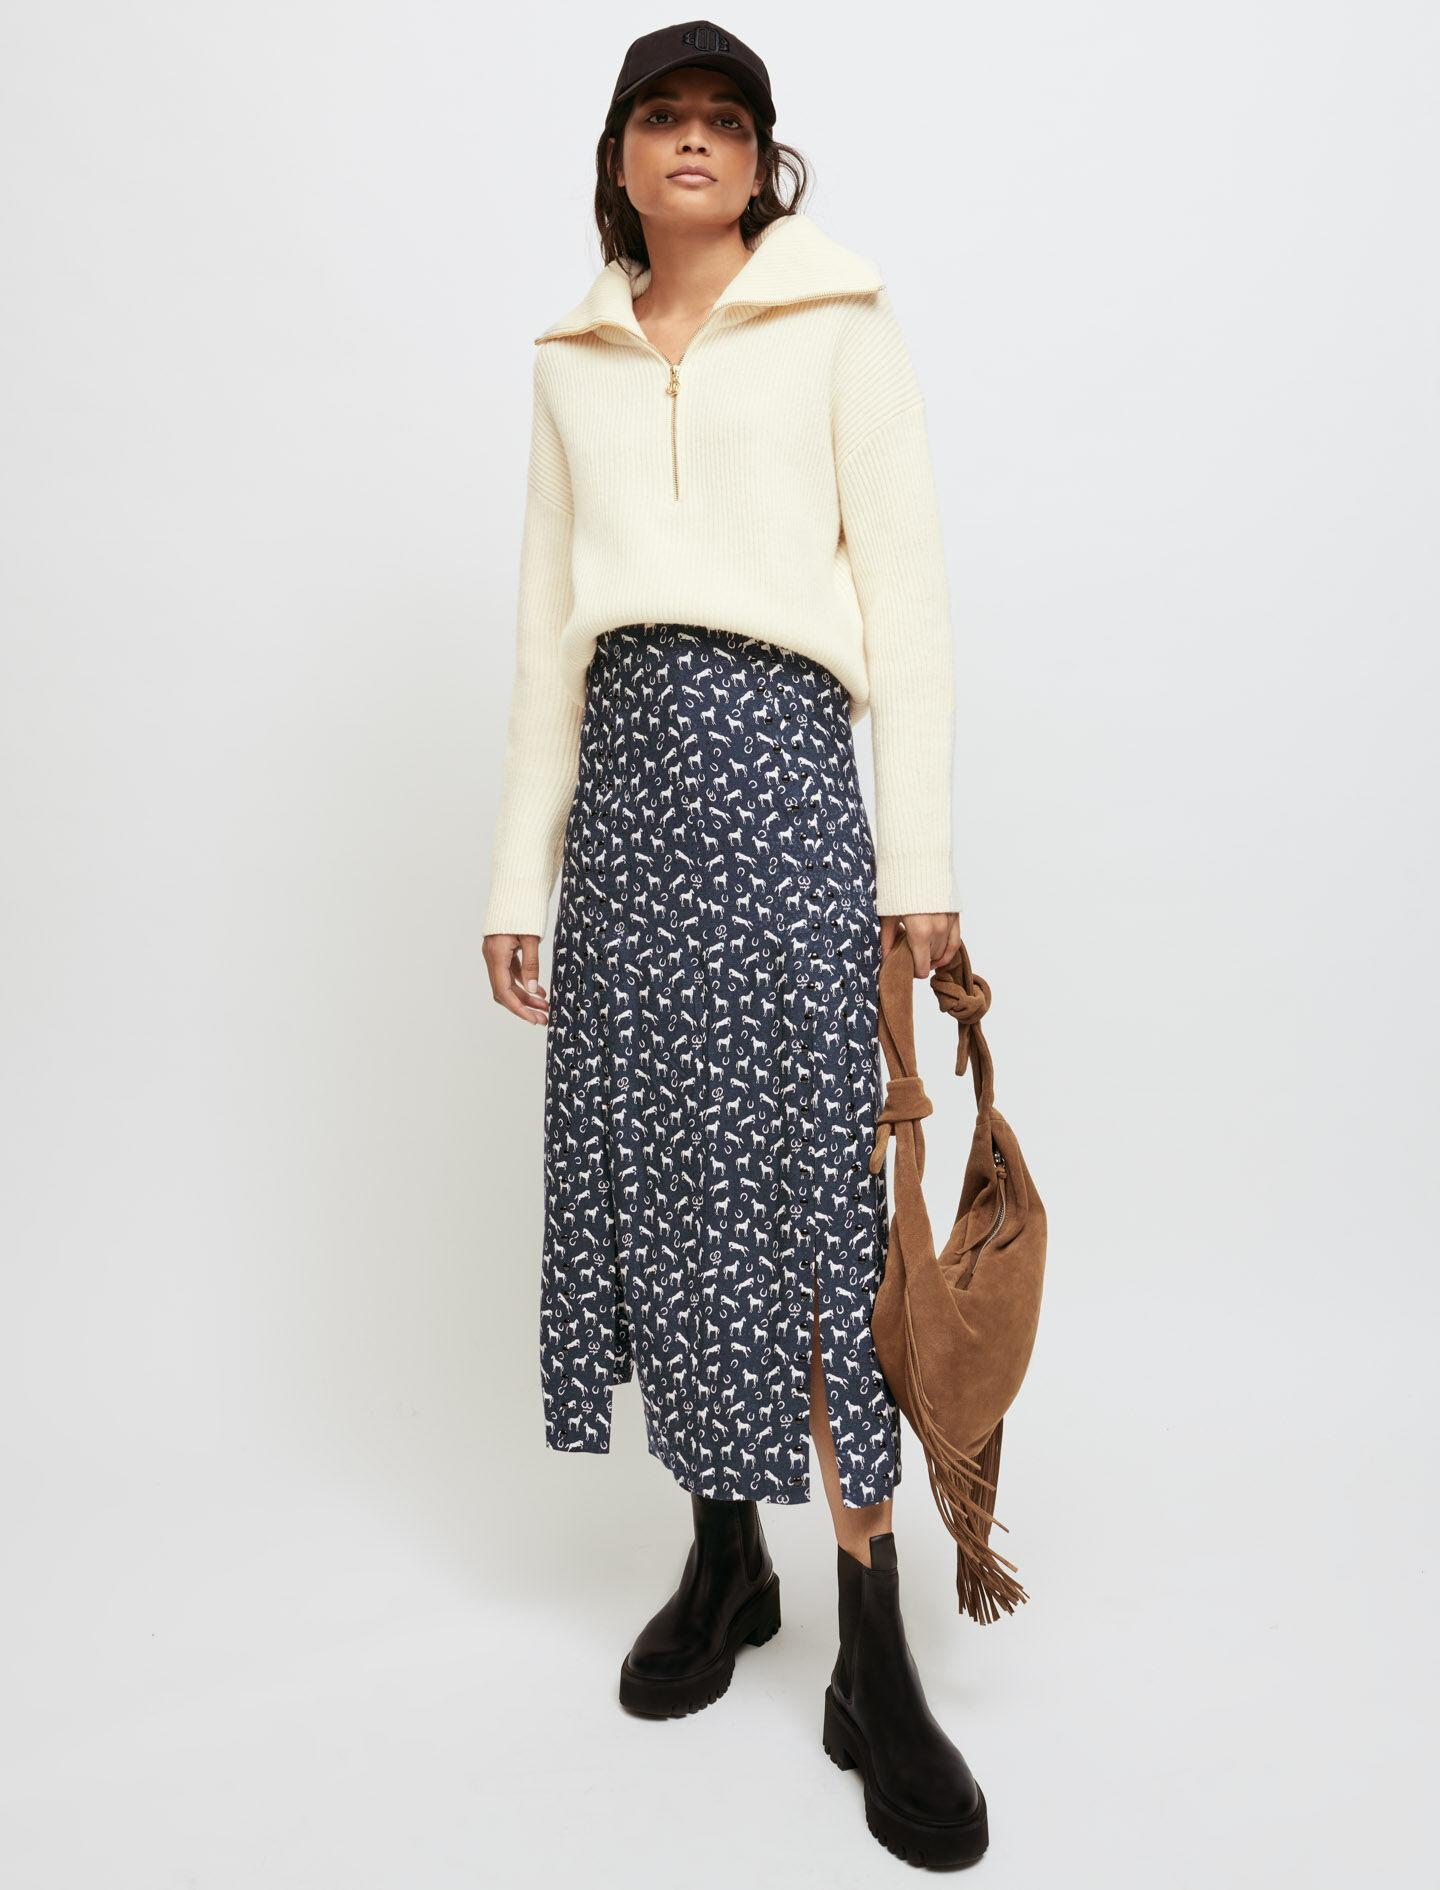 HORSE PRINT JACQUARD SKIRT WITH STUDS 0